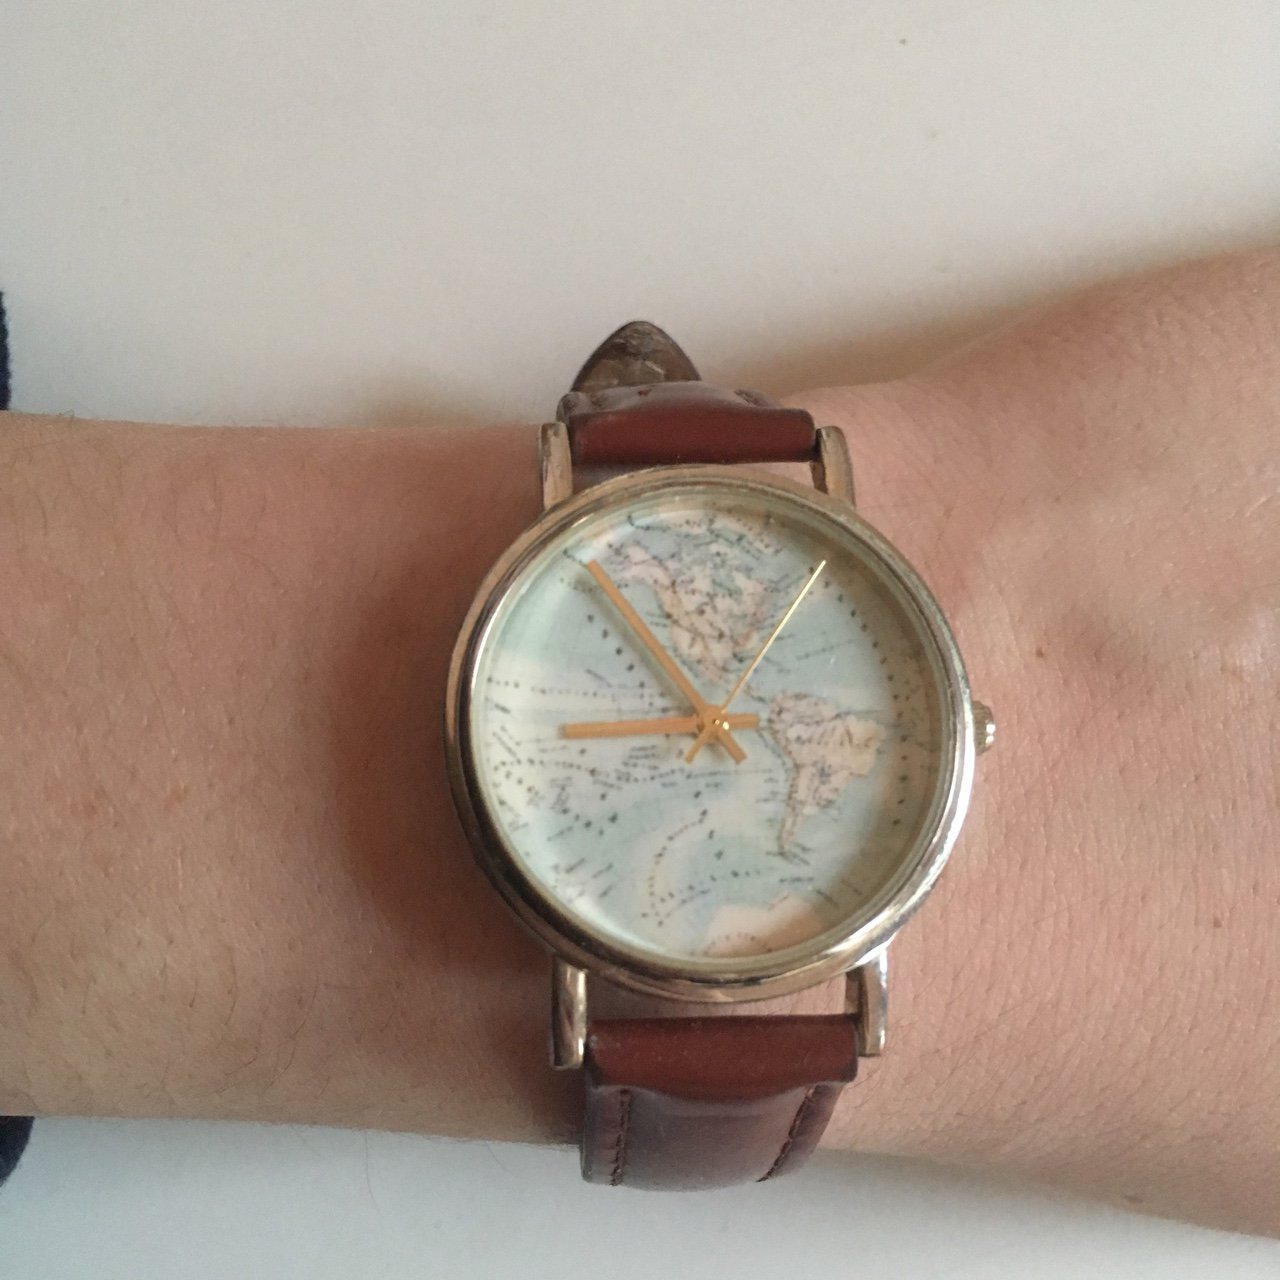 Urban Outfitters World Map Watch.Watch With World Map Face Good Condition I Think Originally Depop